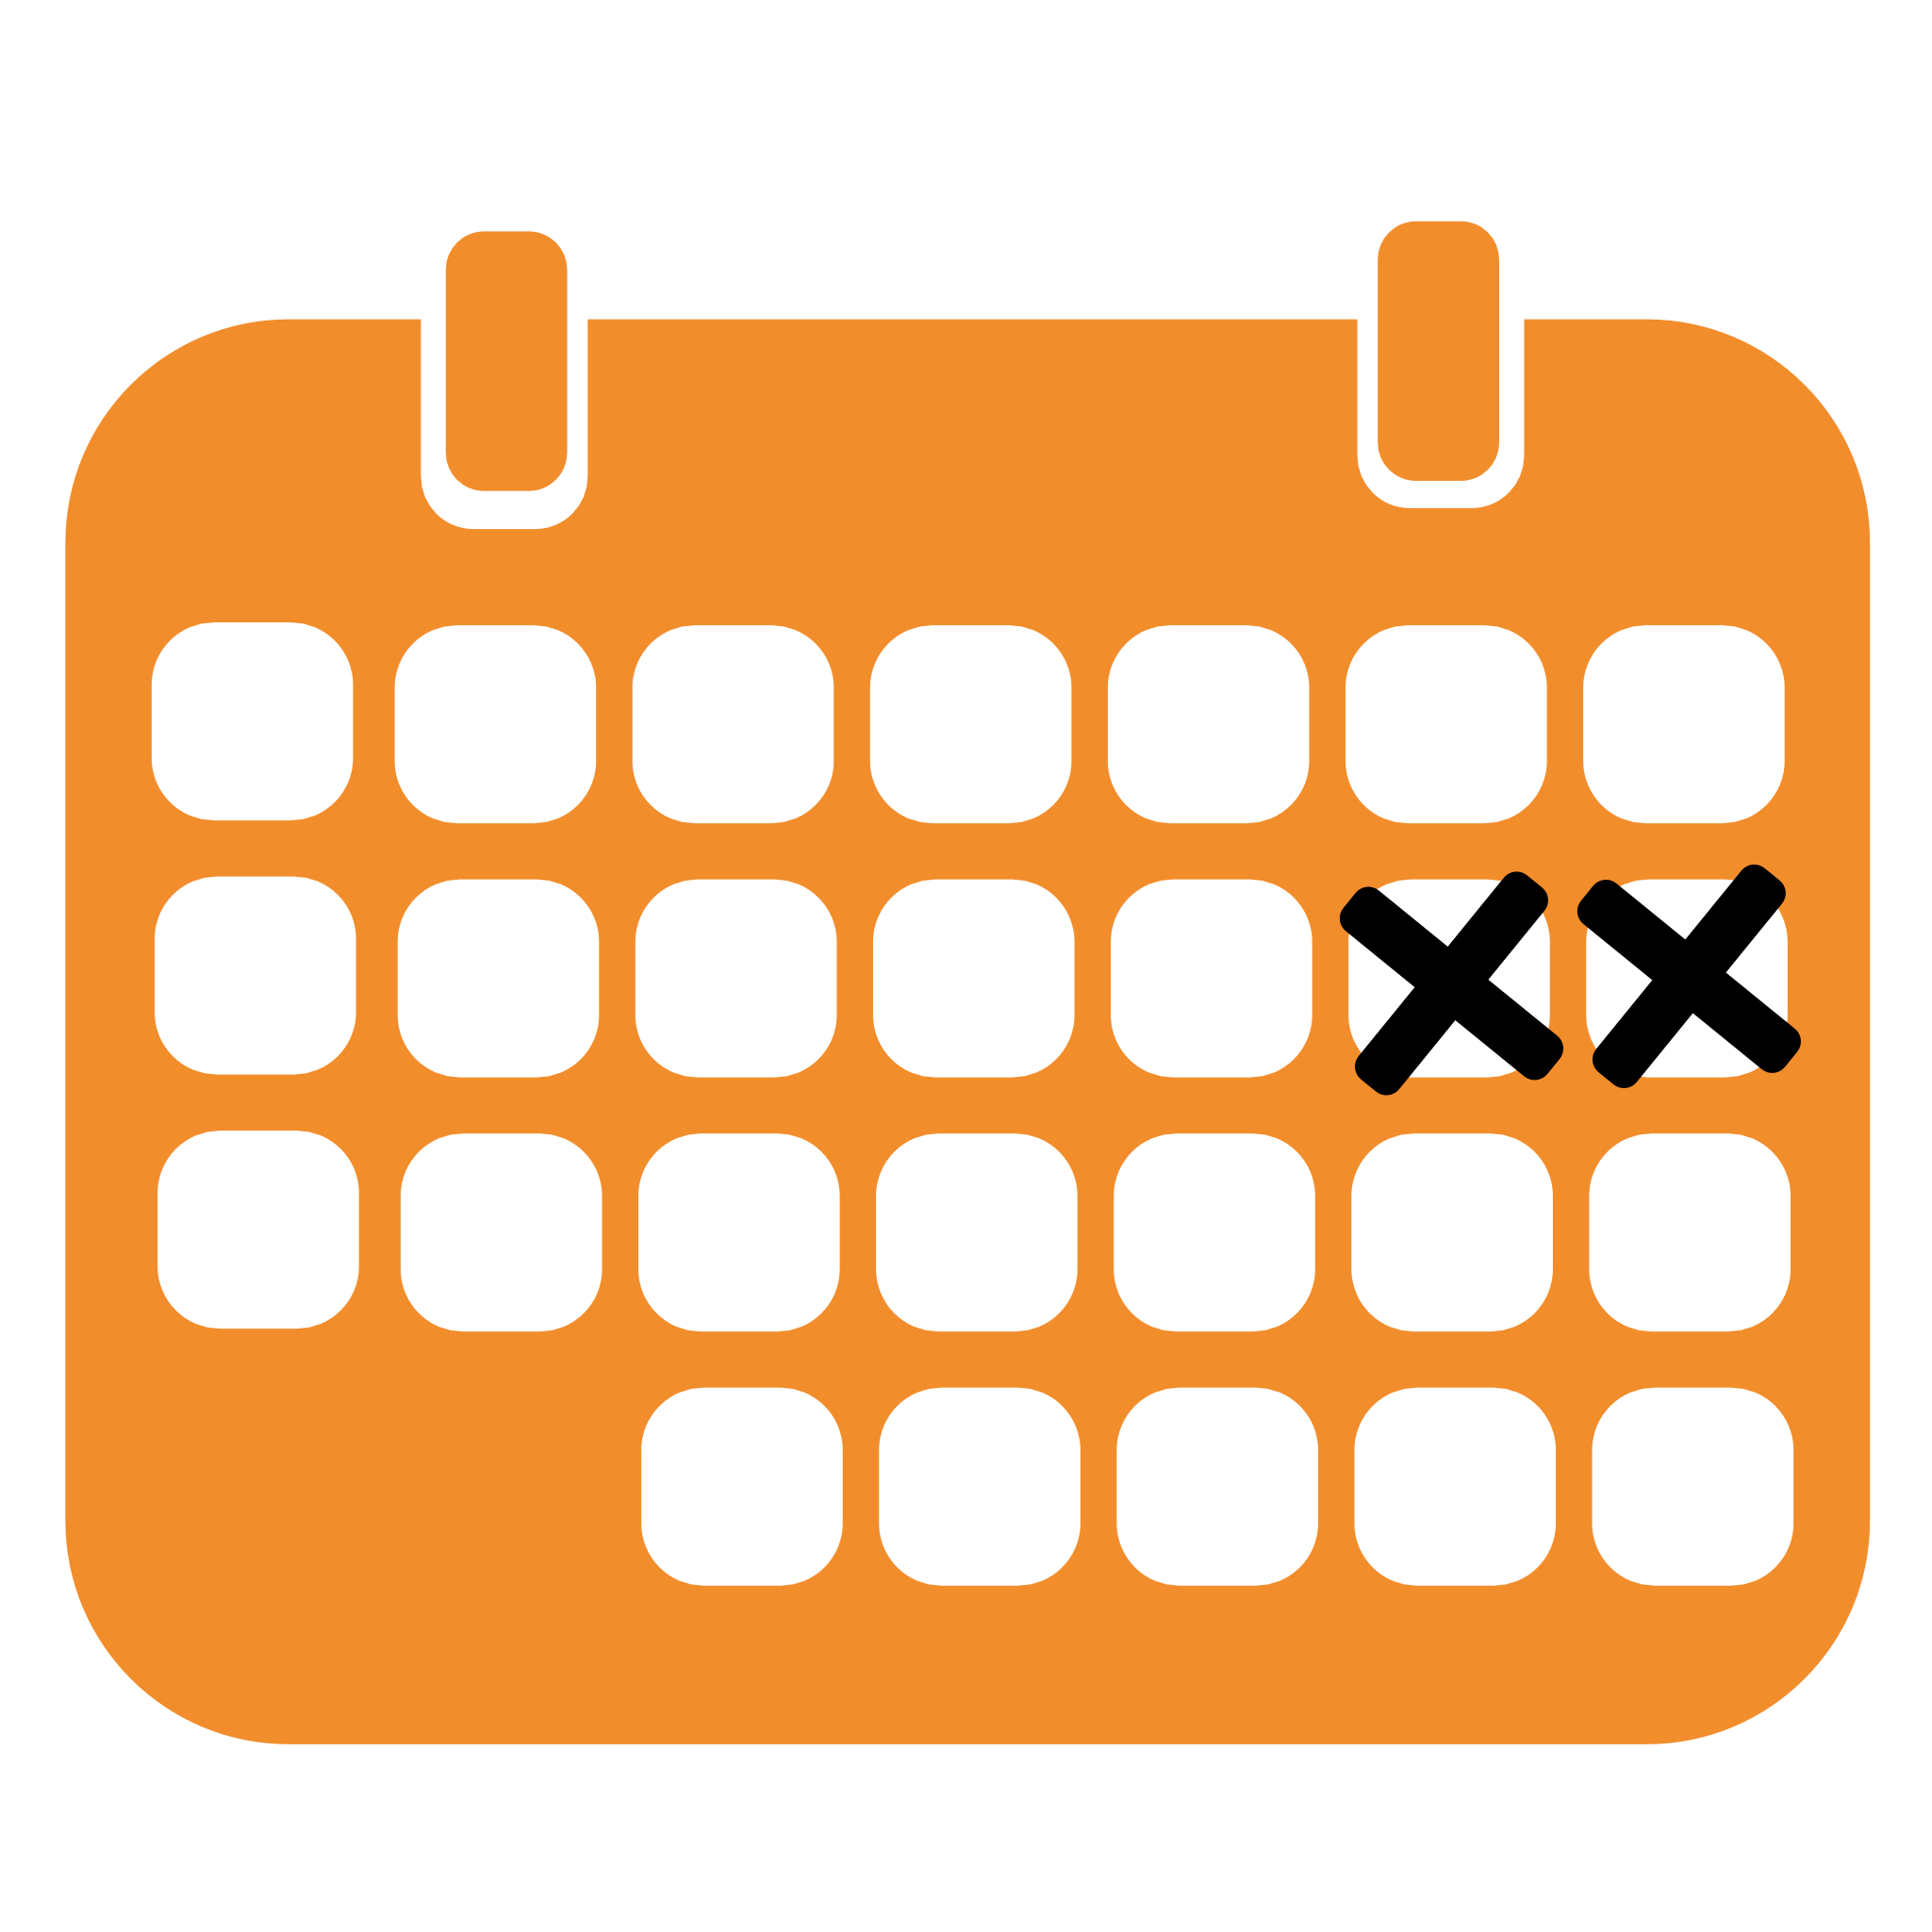 calendar icon where two boxes are checked